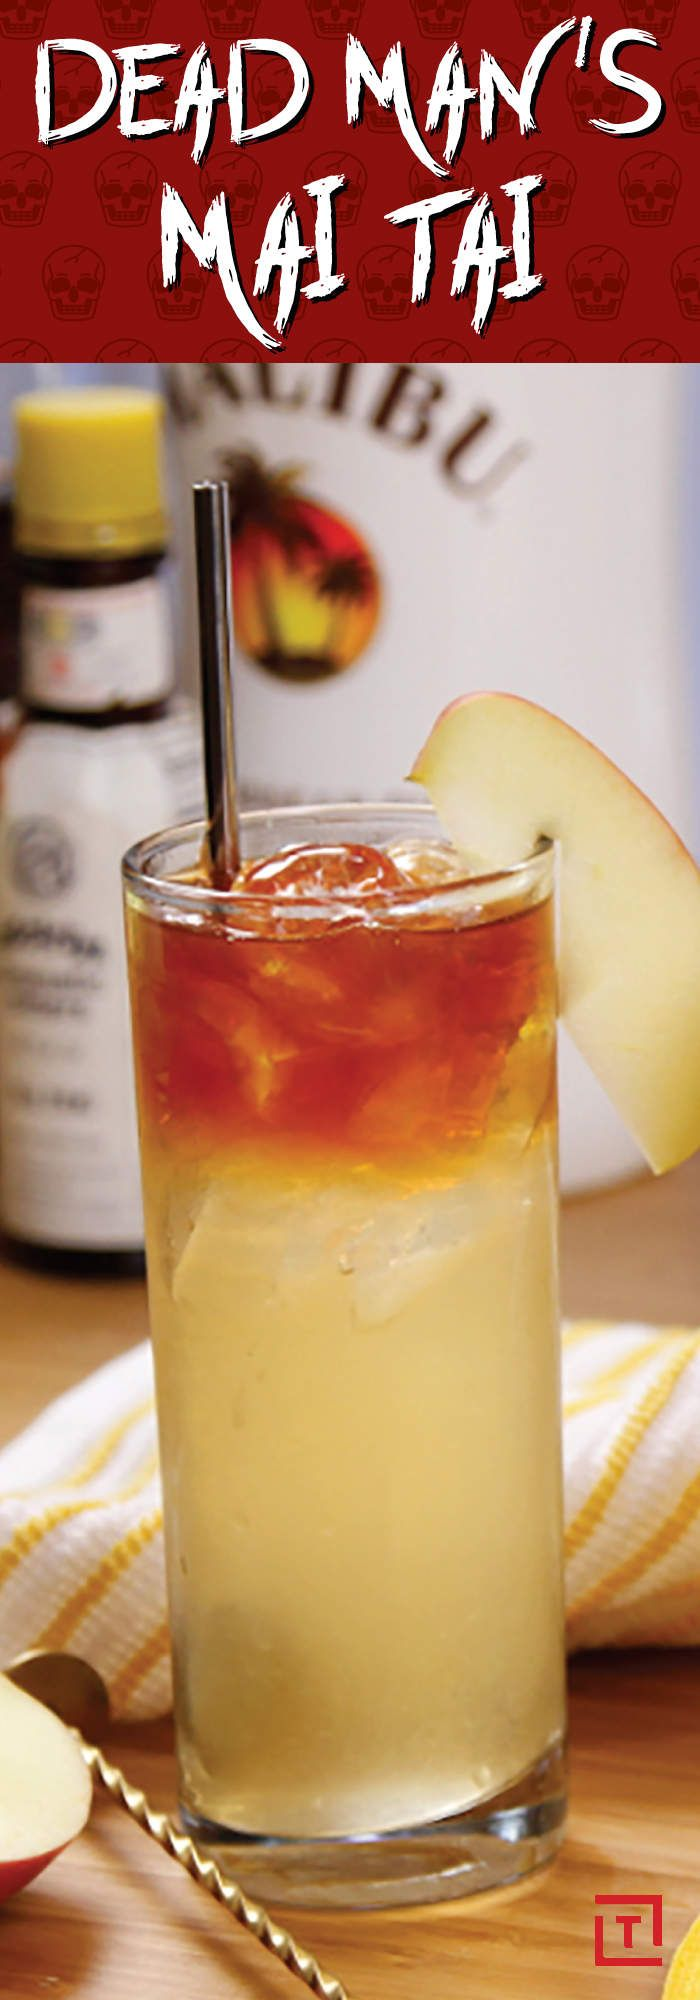 What's easy to make and features coconut rum, apple cider, cinnamon, and more rum? This Dead Man's Mai Tai.